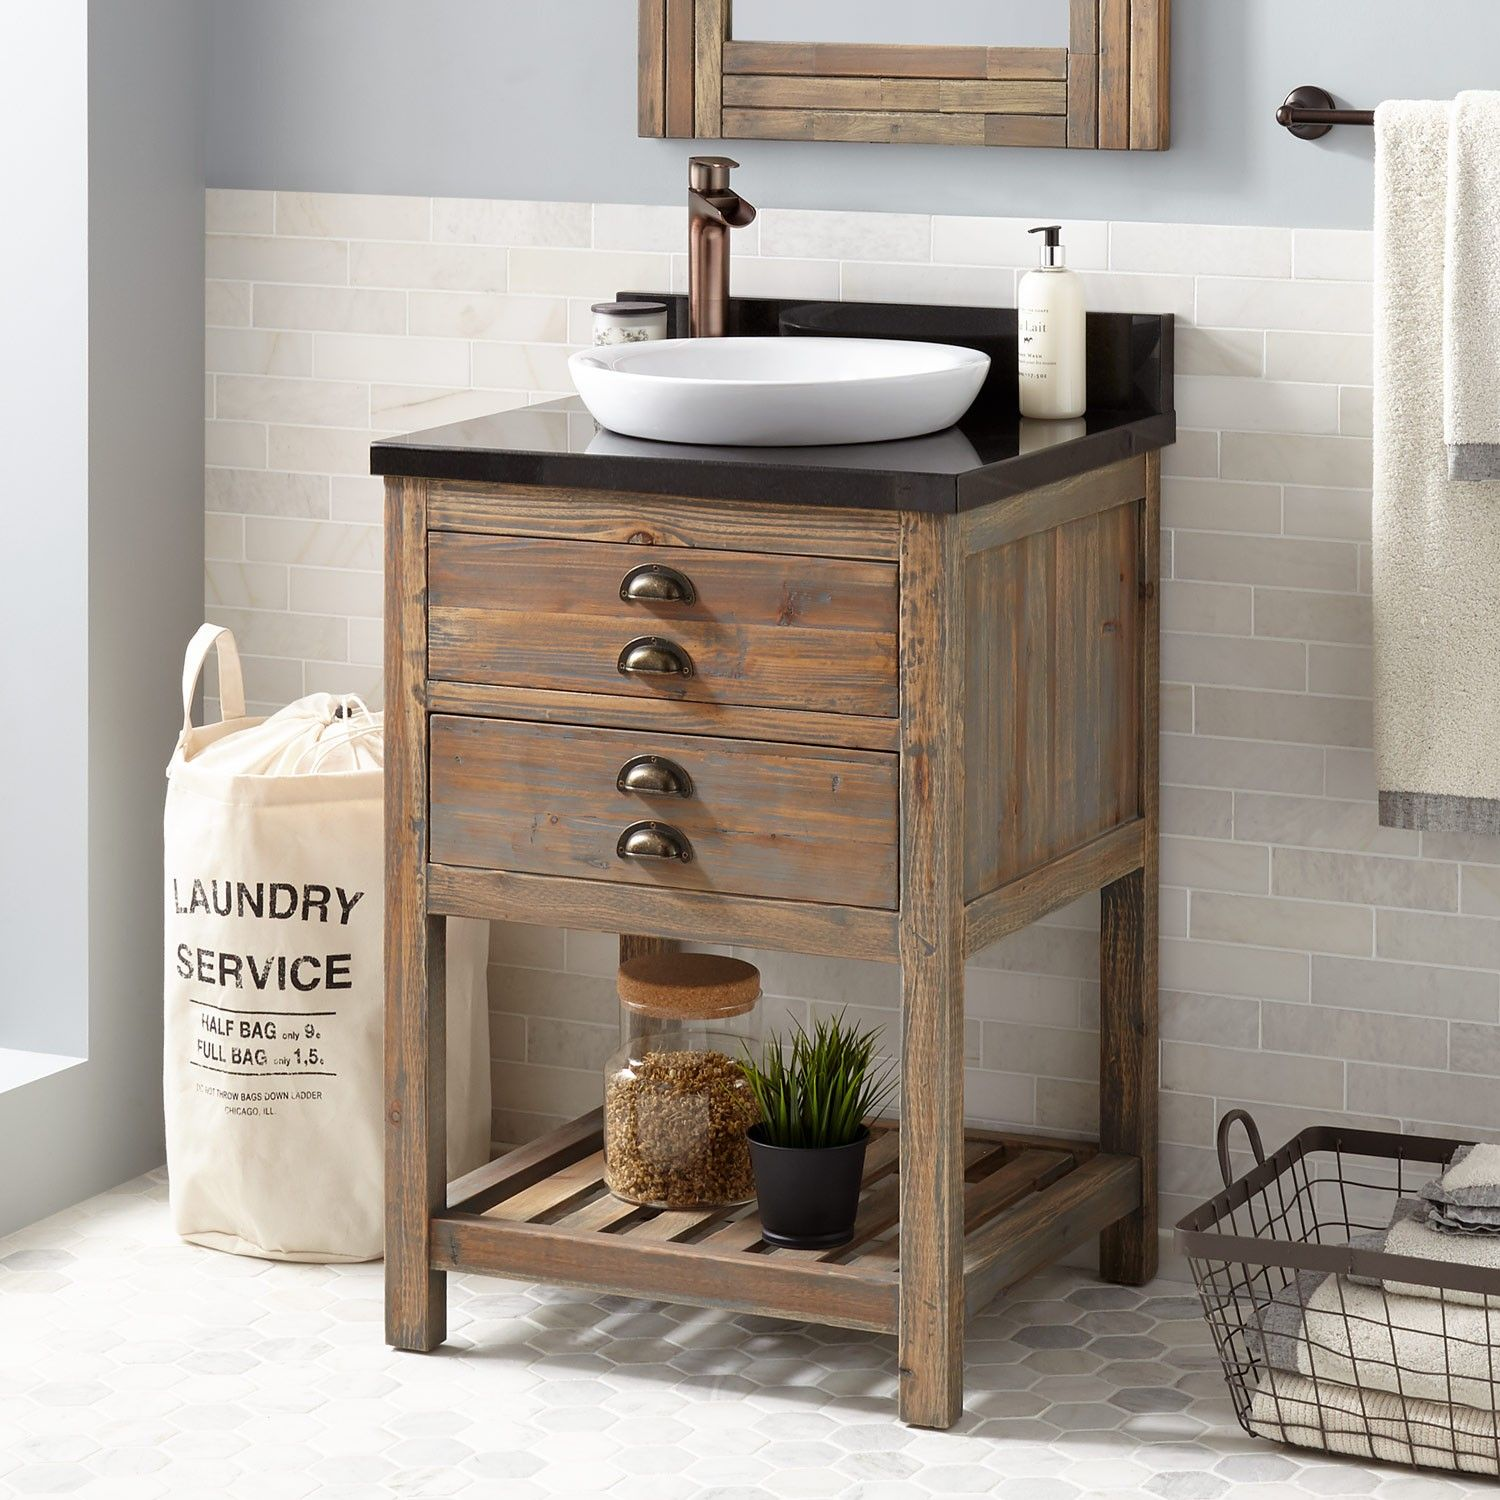 24 Benoist Reclaimed Wood Vanity For Semi Recessed Sink Gray